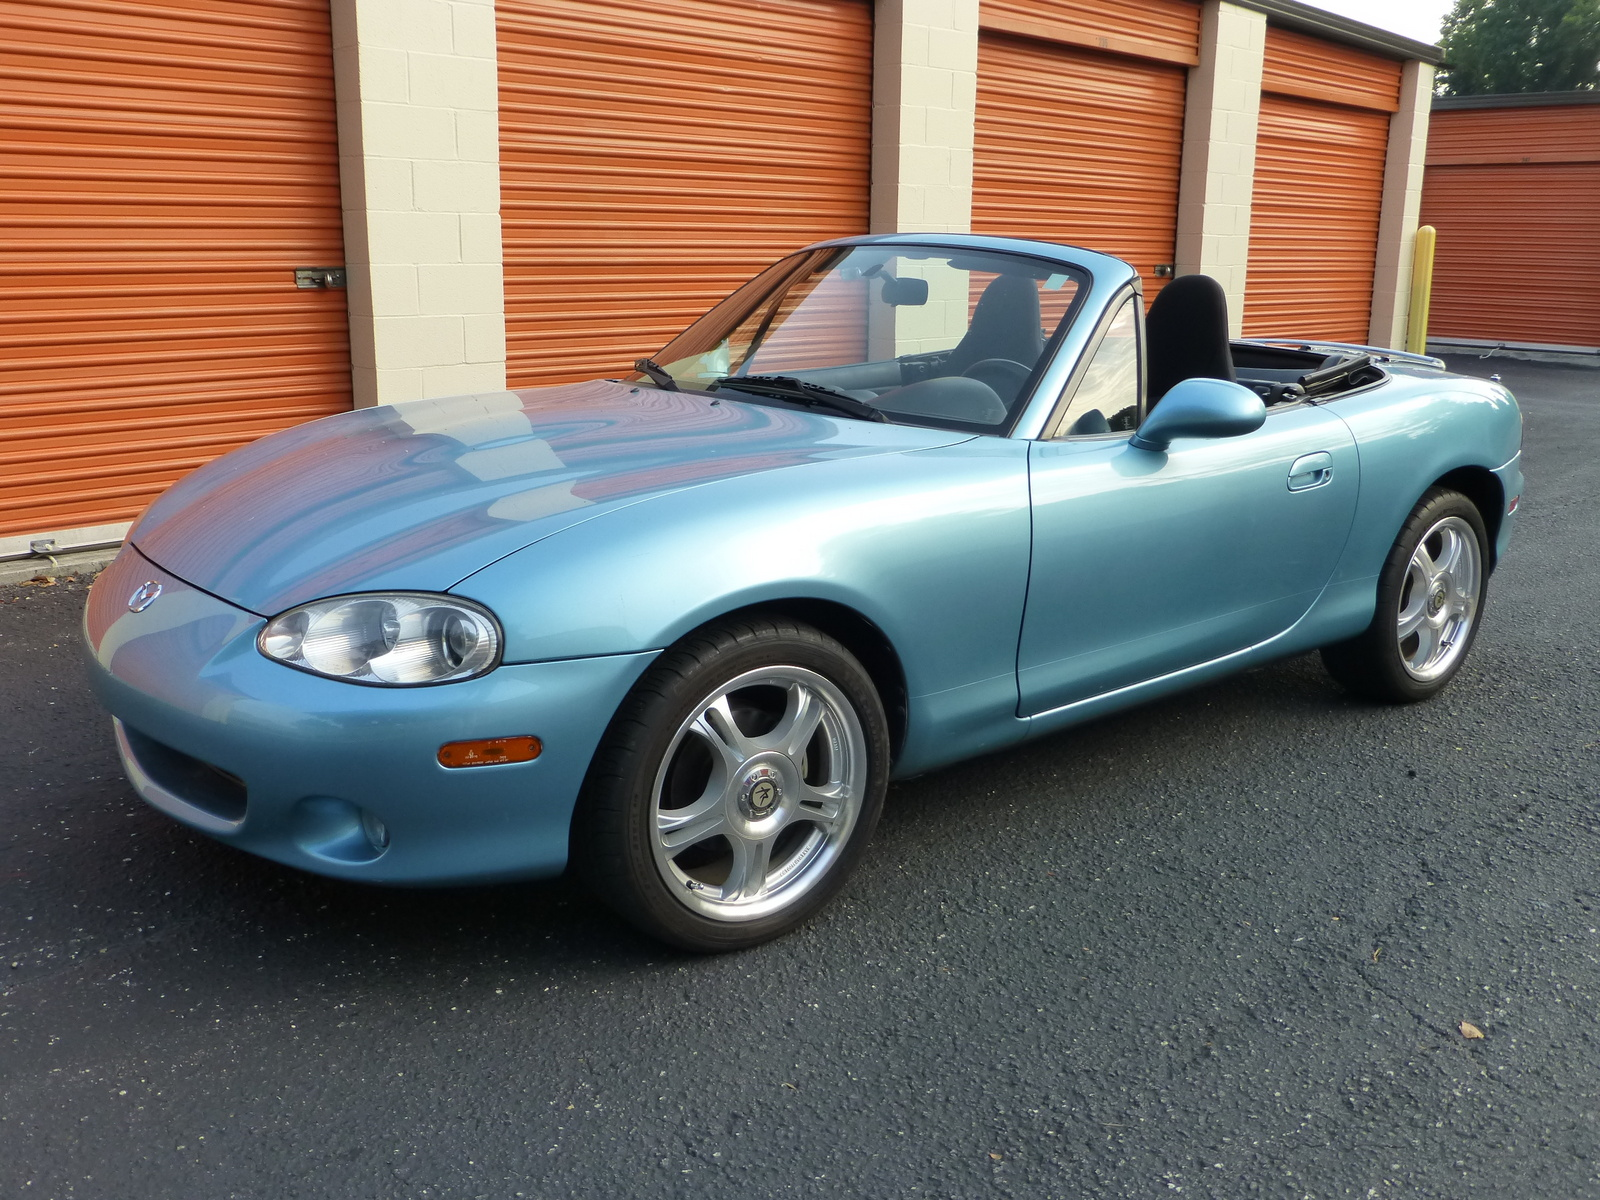 service manual  2002 mazda mx 5 how to replace the head gasket  2002 mazda mx 5 how to replace 2002 mazda miata service manual pdf free 2002 mazda miata owners manual